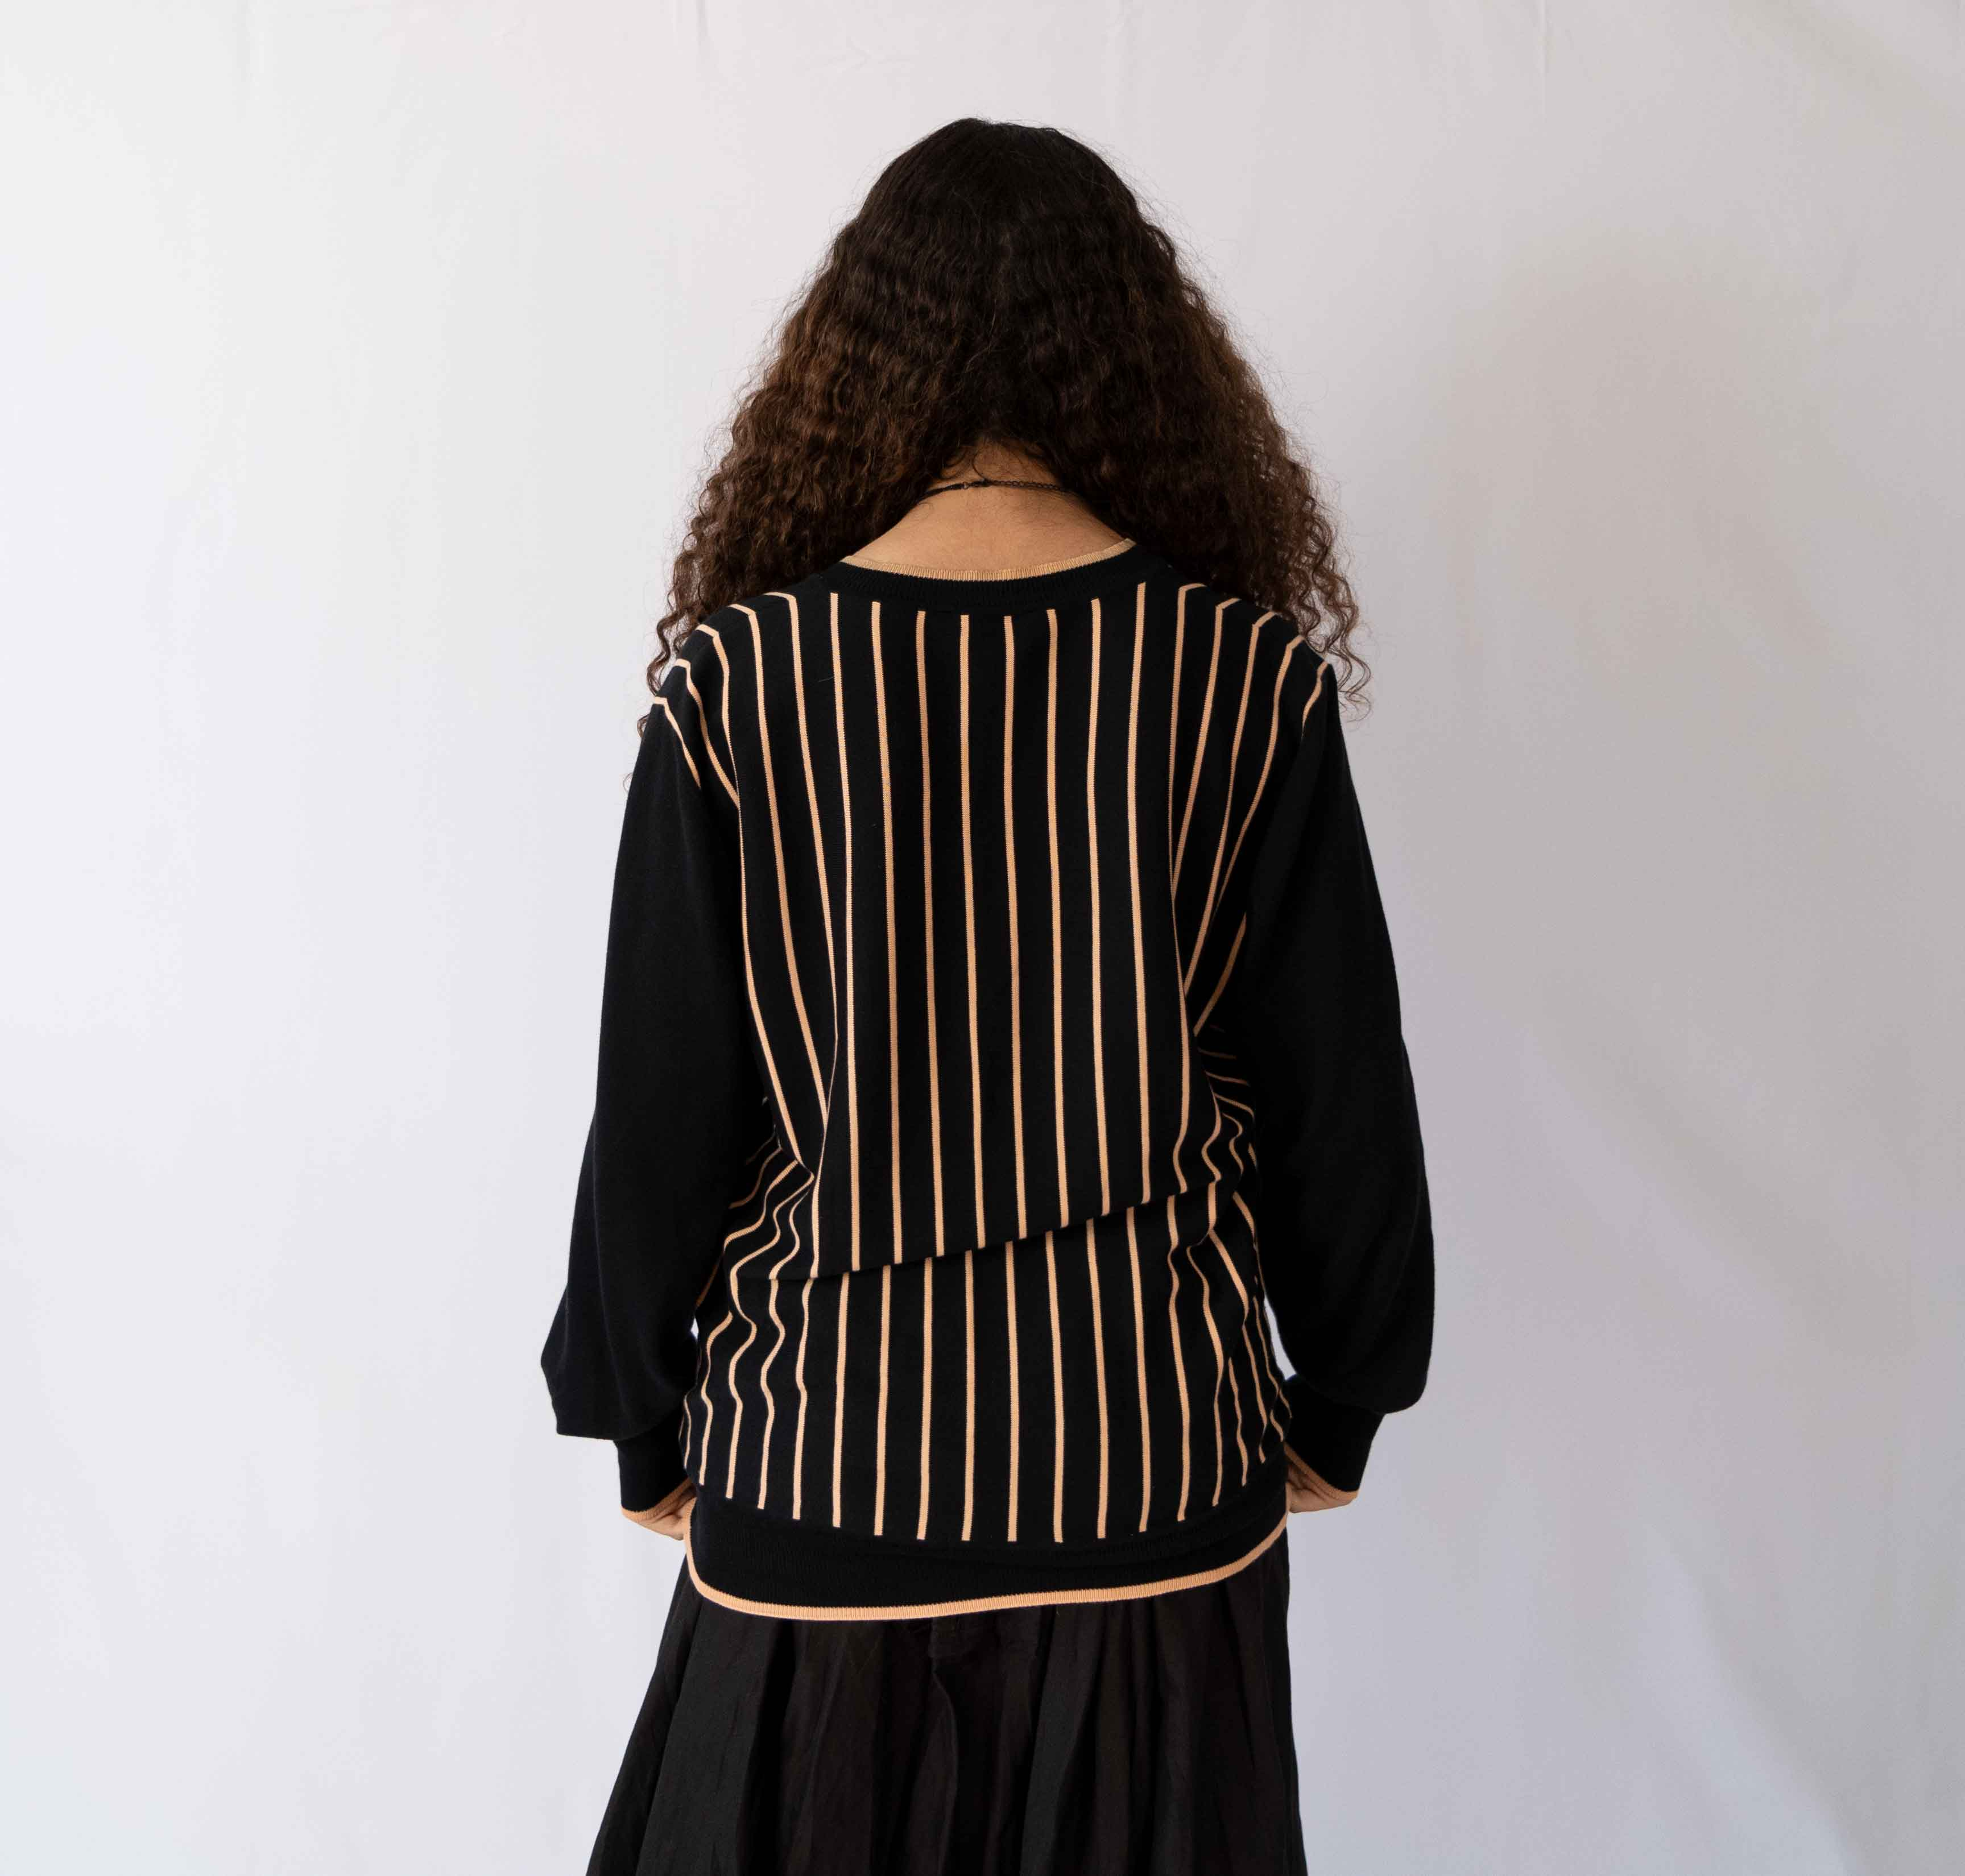 A pinstripe sweater with a nice big v-neck, perfect. Wear it oversized or fit it just right.